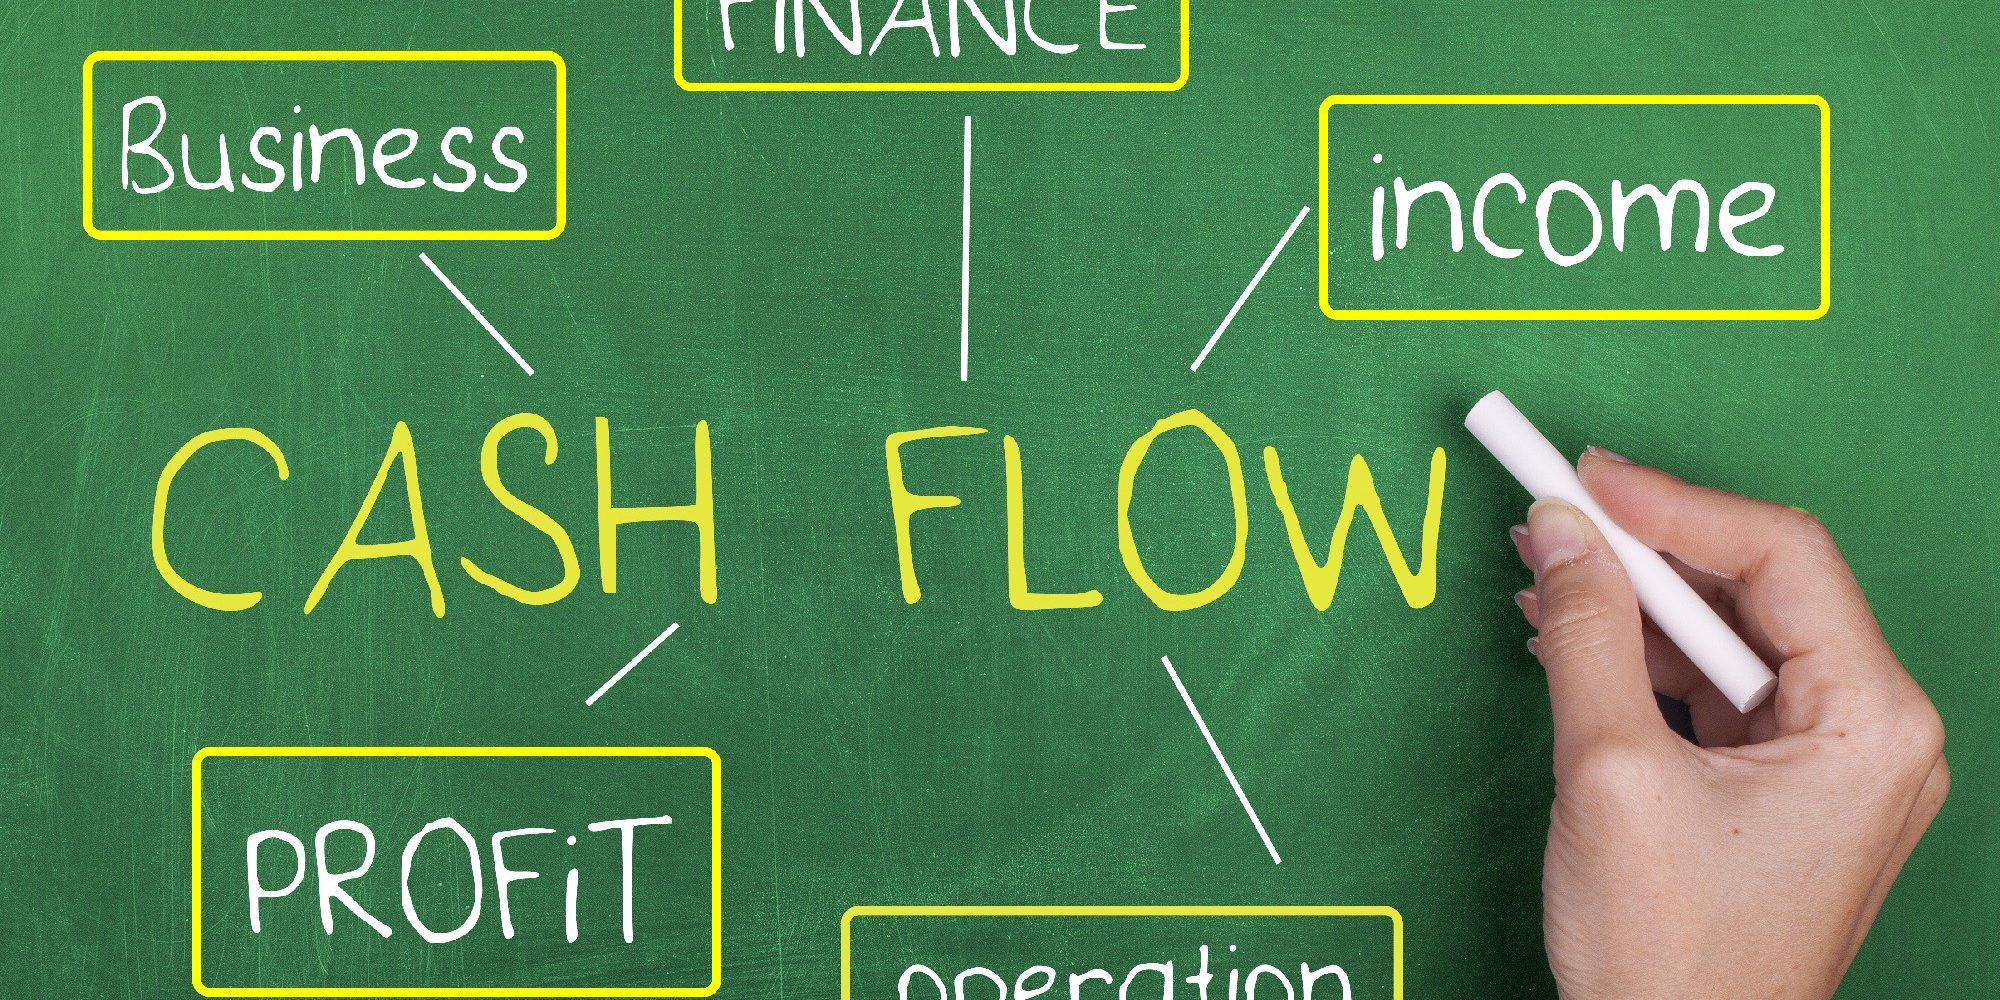 Cash Flow Problems And Solutions For Startups And Small